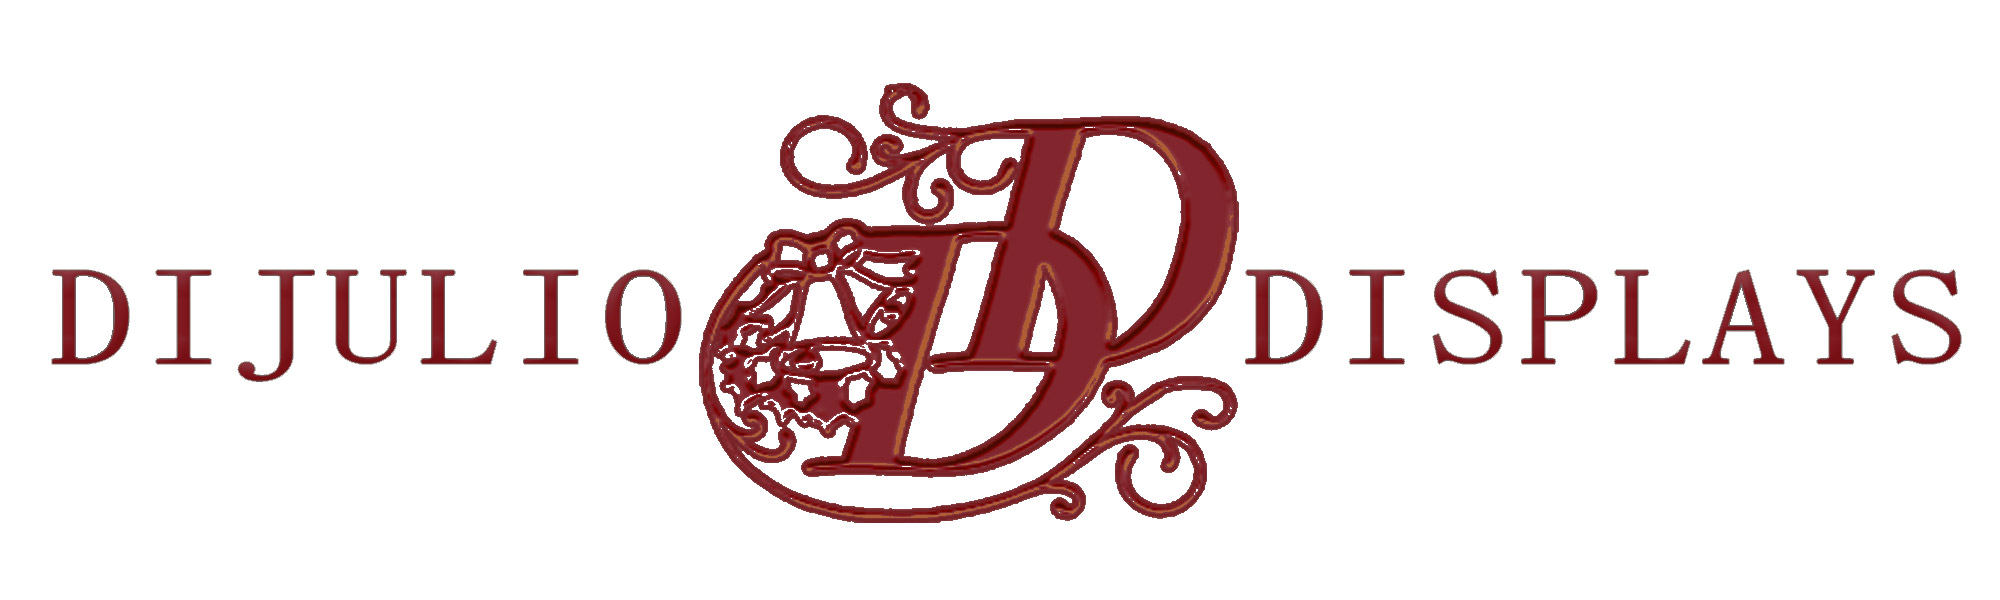 Dijulio-Displays-Updated-Logo